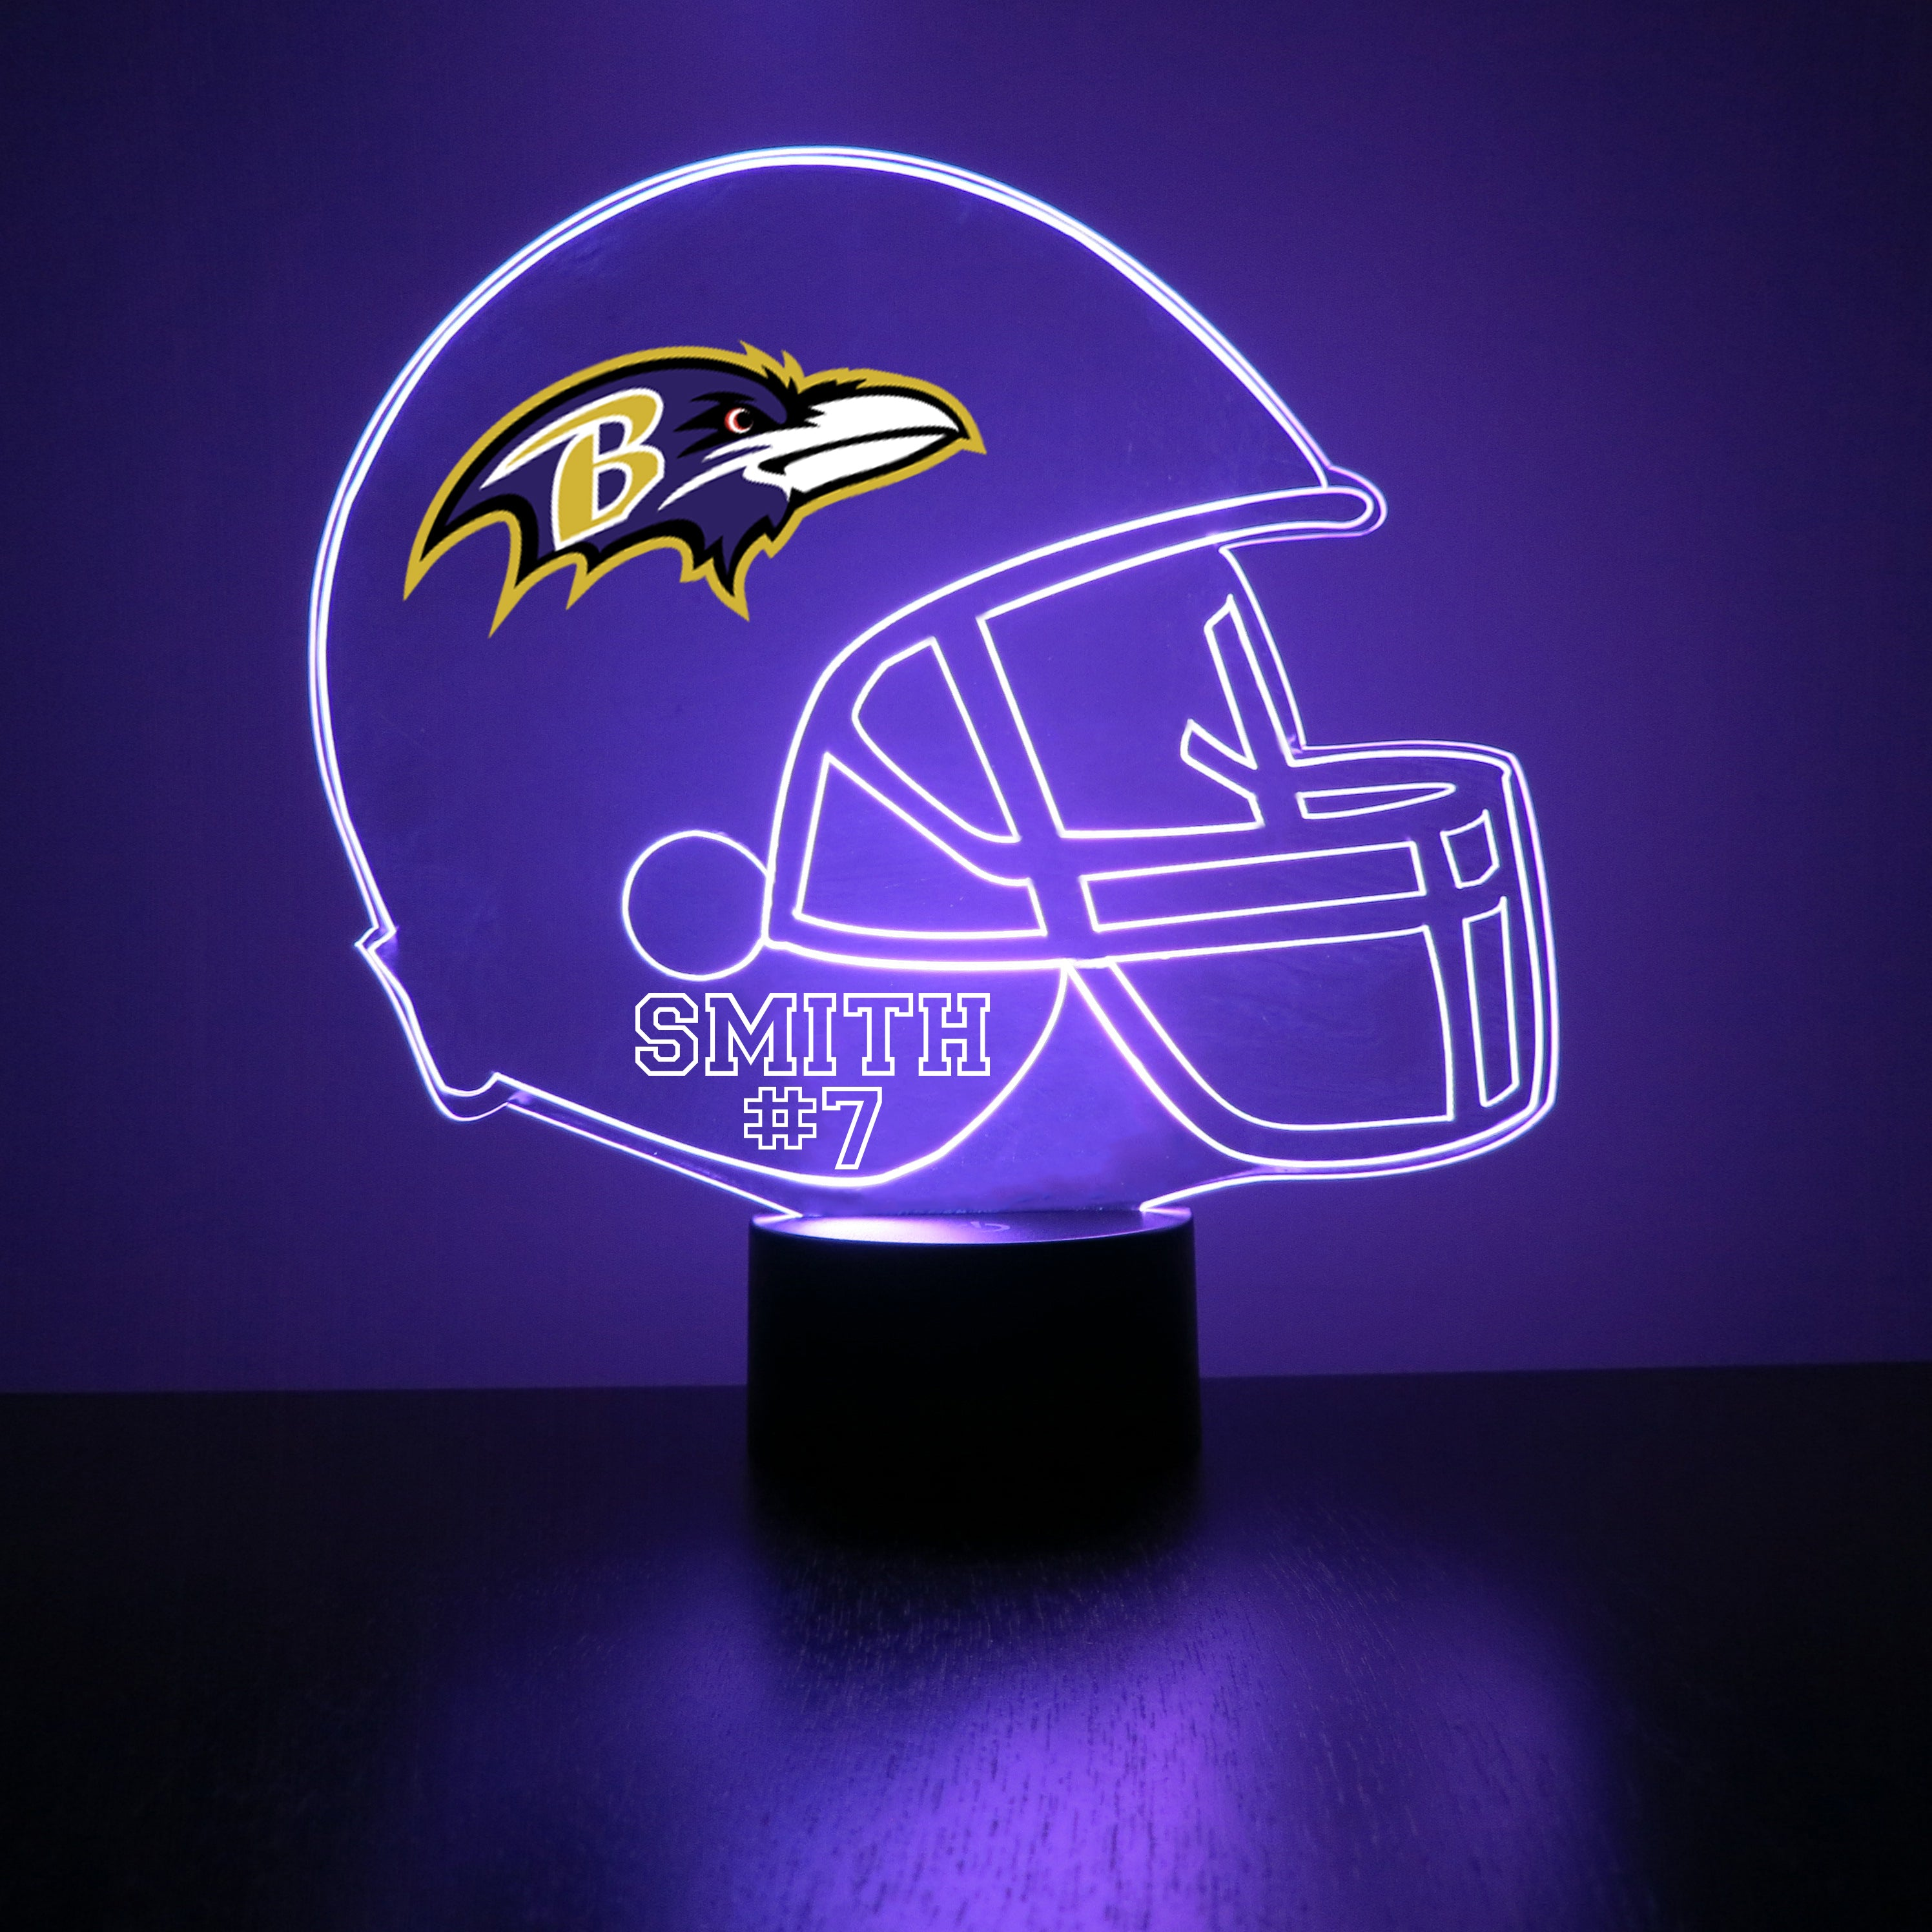 Baltimore Ravens  Football Personalized FREE Light Up 3D Illusion LED Light - Handmade By Mirror Magic